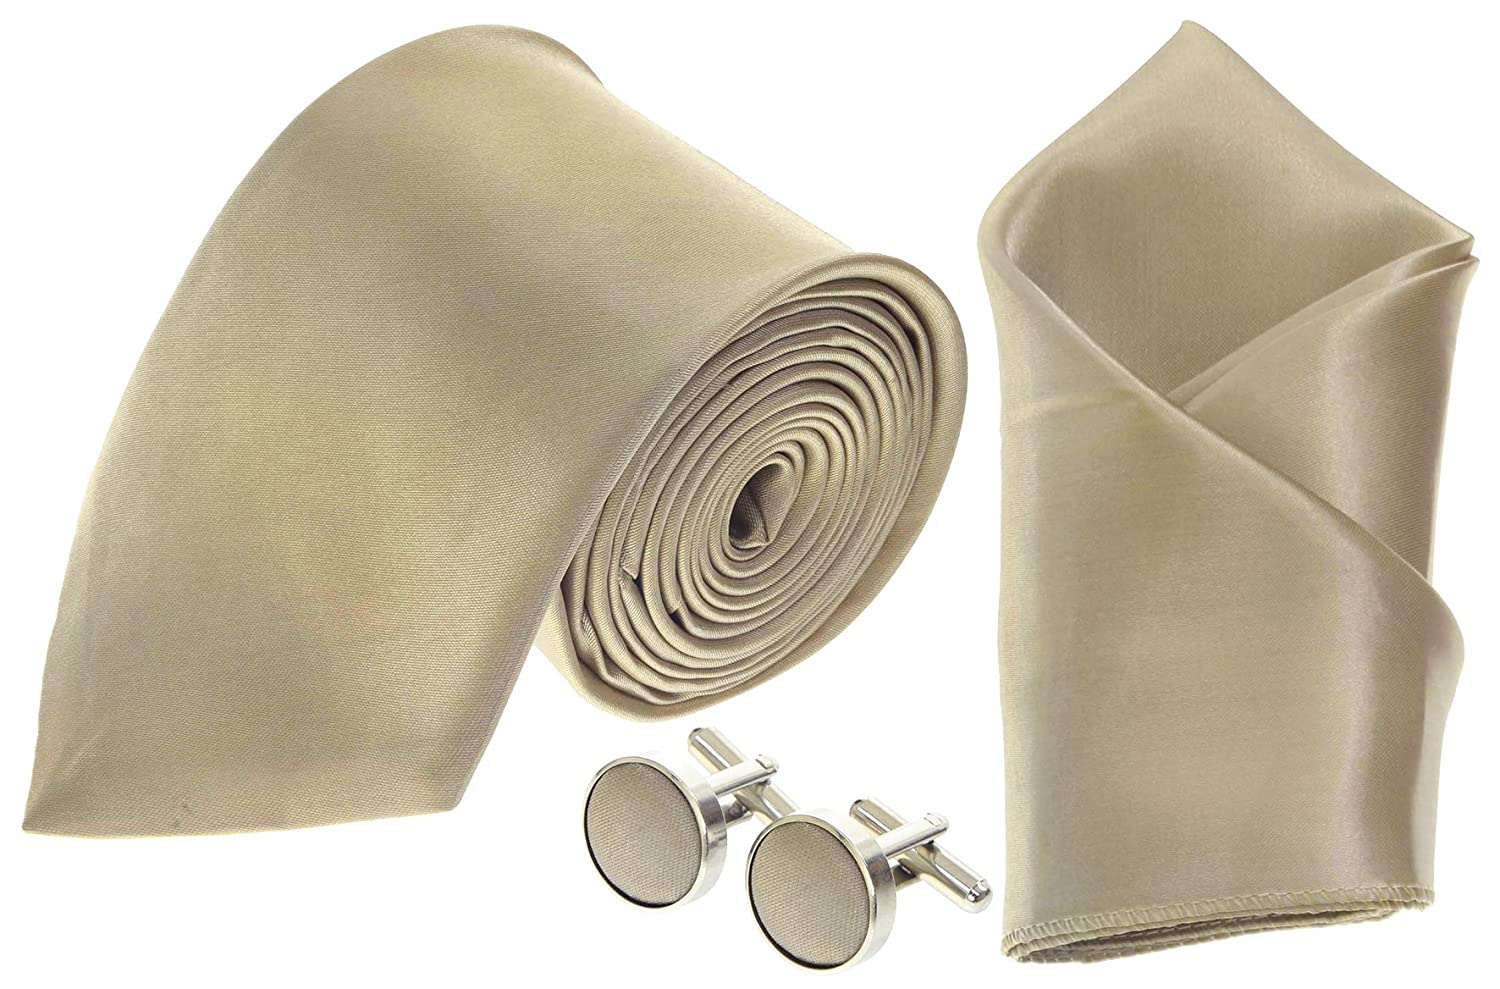 06e2e2543219 Champagne Gold Men's Matching Ties, Cufflinks & Pocket  Square/Hanky/Handkerchief Sets *UK Seller*: Amazon.co.uk: Clothing